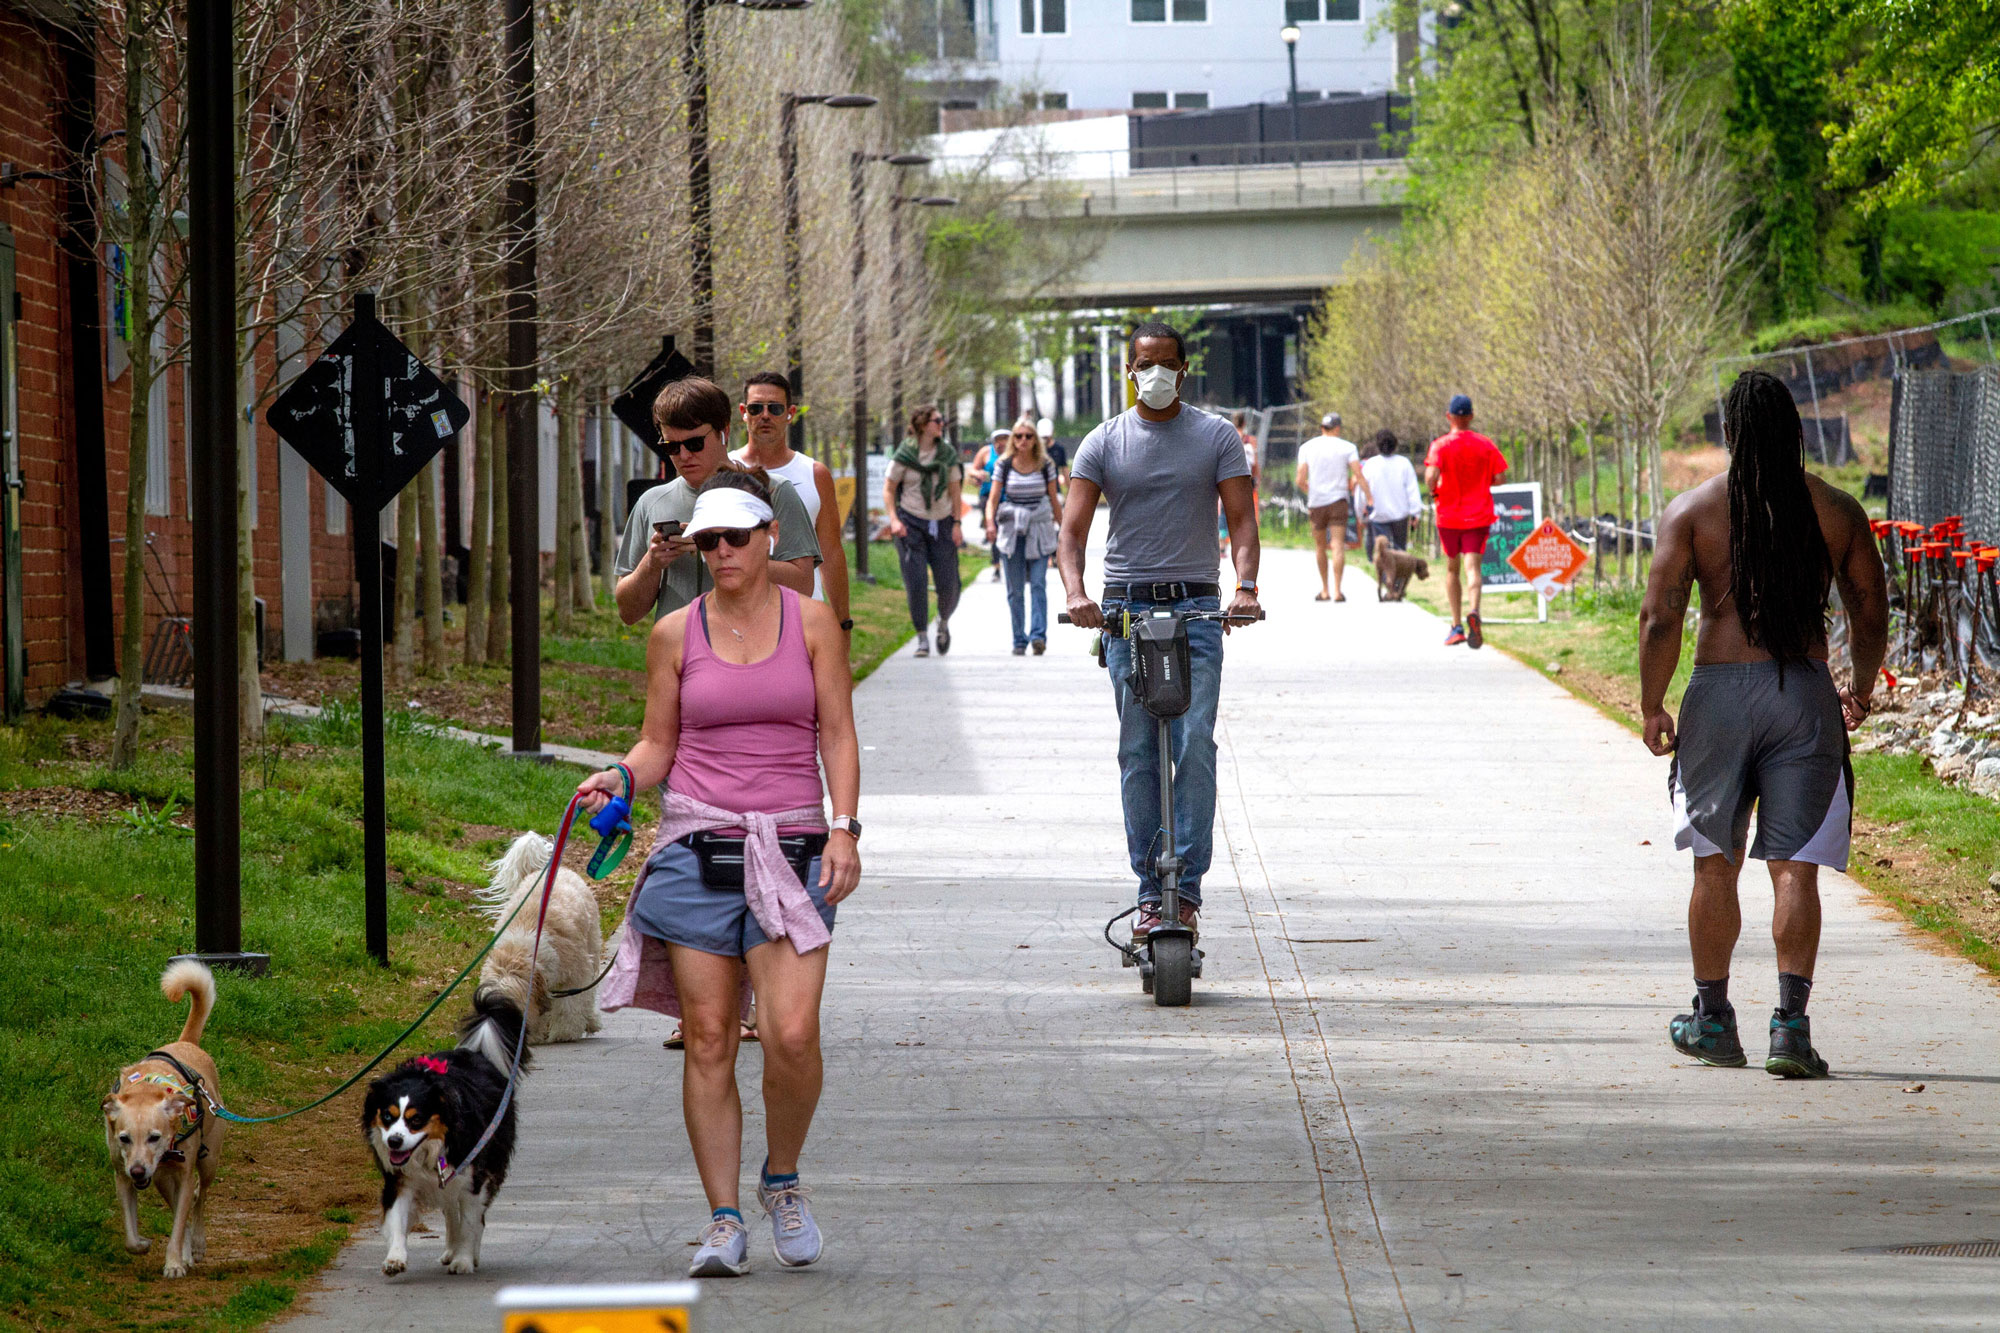 Marcus Bouliany, center, wears a mask while making his way along the BeltLine in Atlanta, during the coronavirus outbreak Saturday, April 4, 2020. (Steve Schaefer/AP